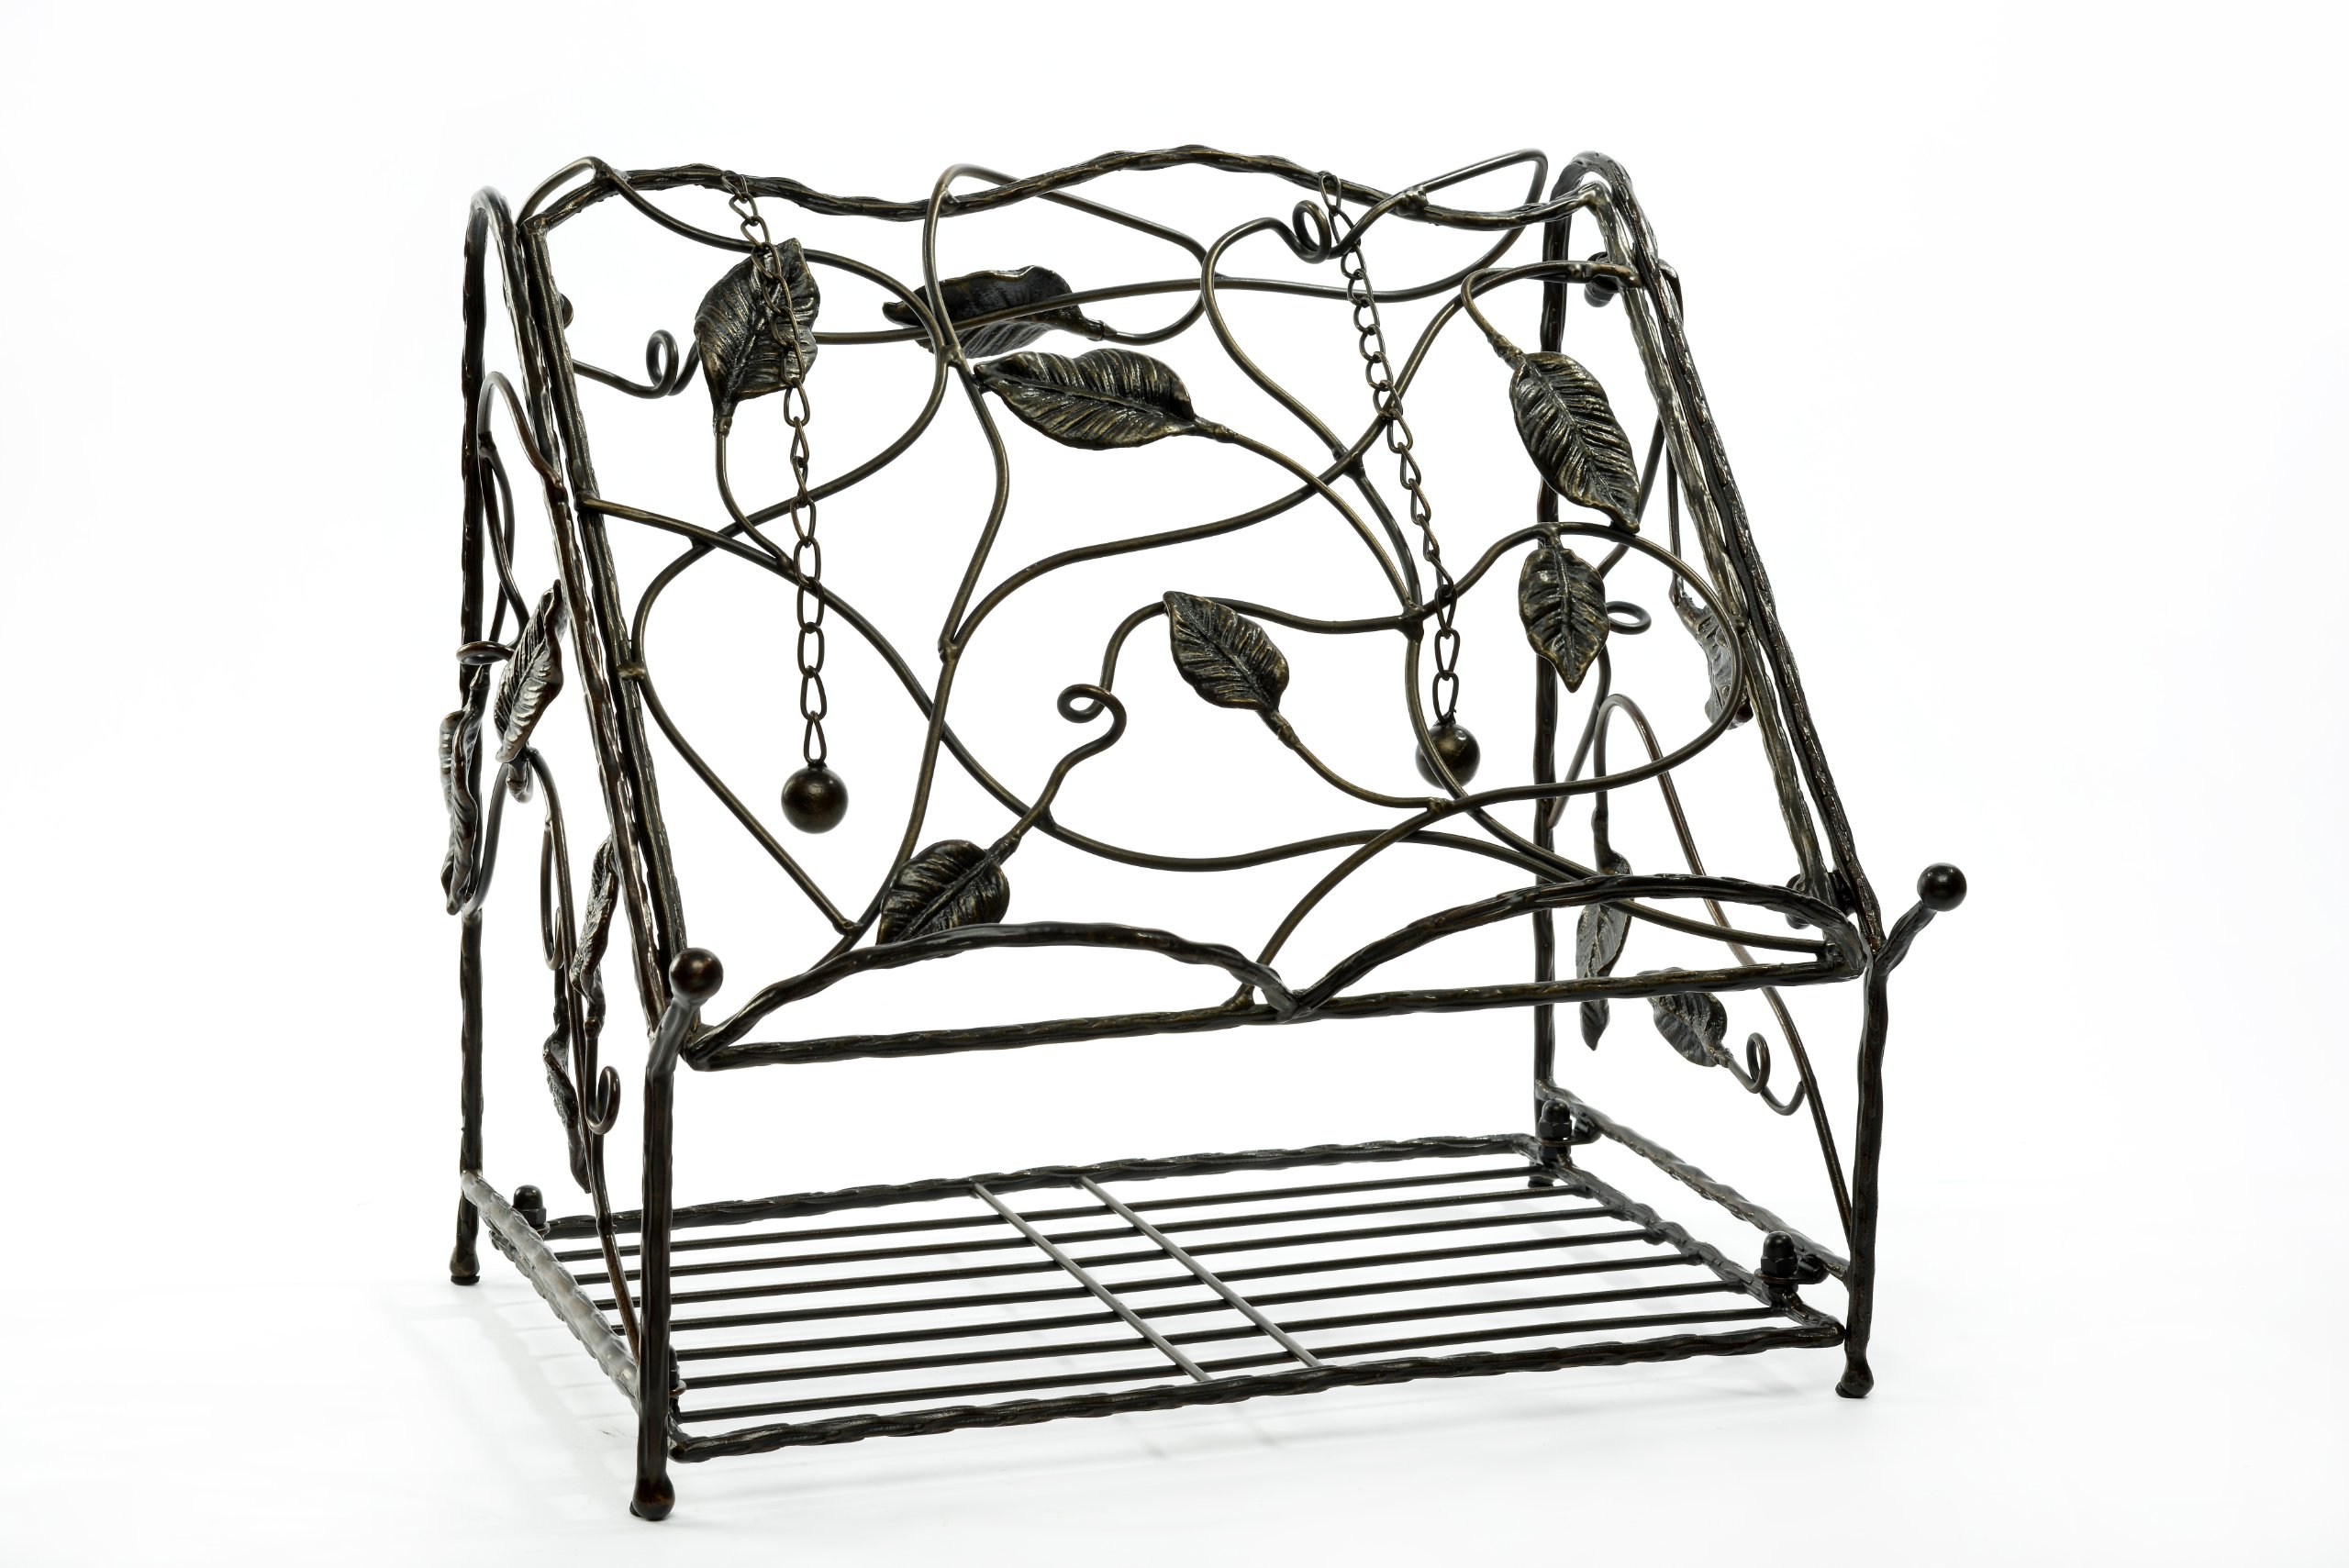 Caffco International Biltmore Inspirations Collection Arbor Metal Vine Cookbook Stand